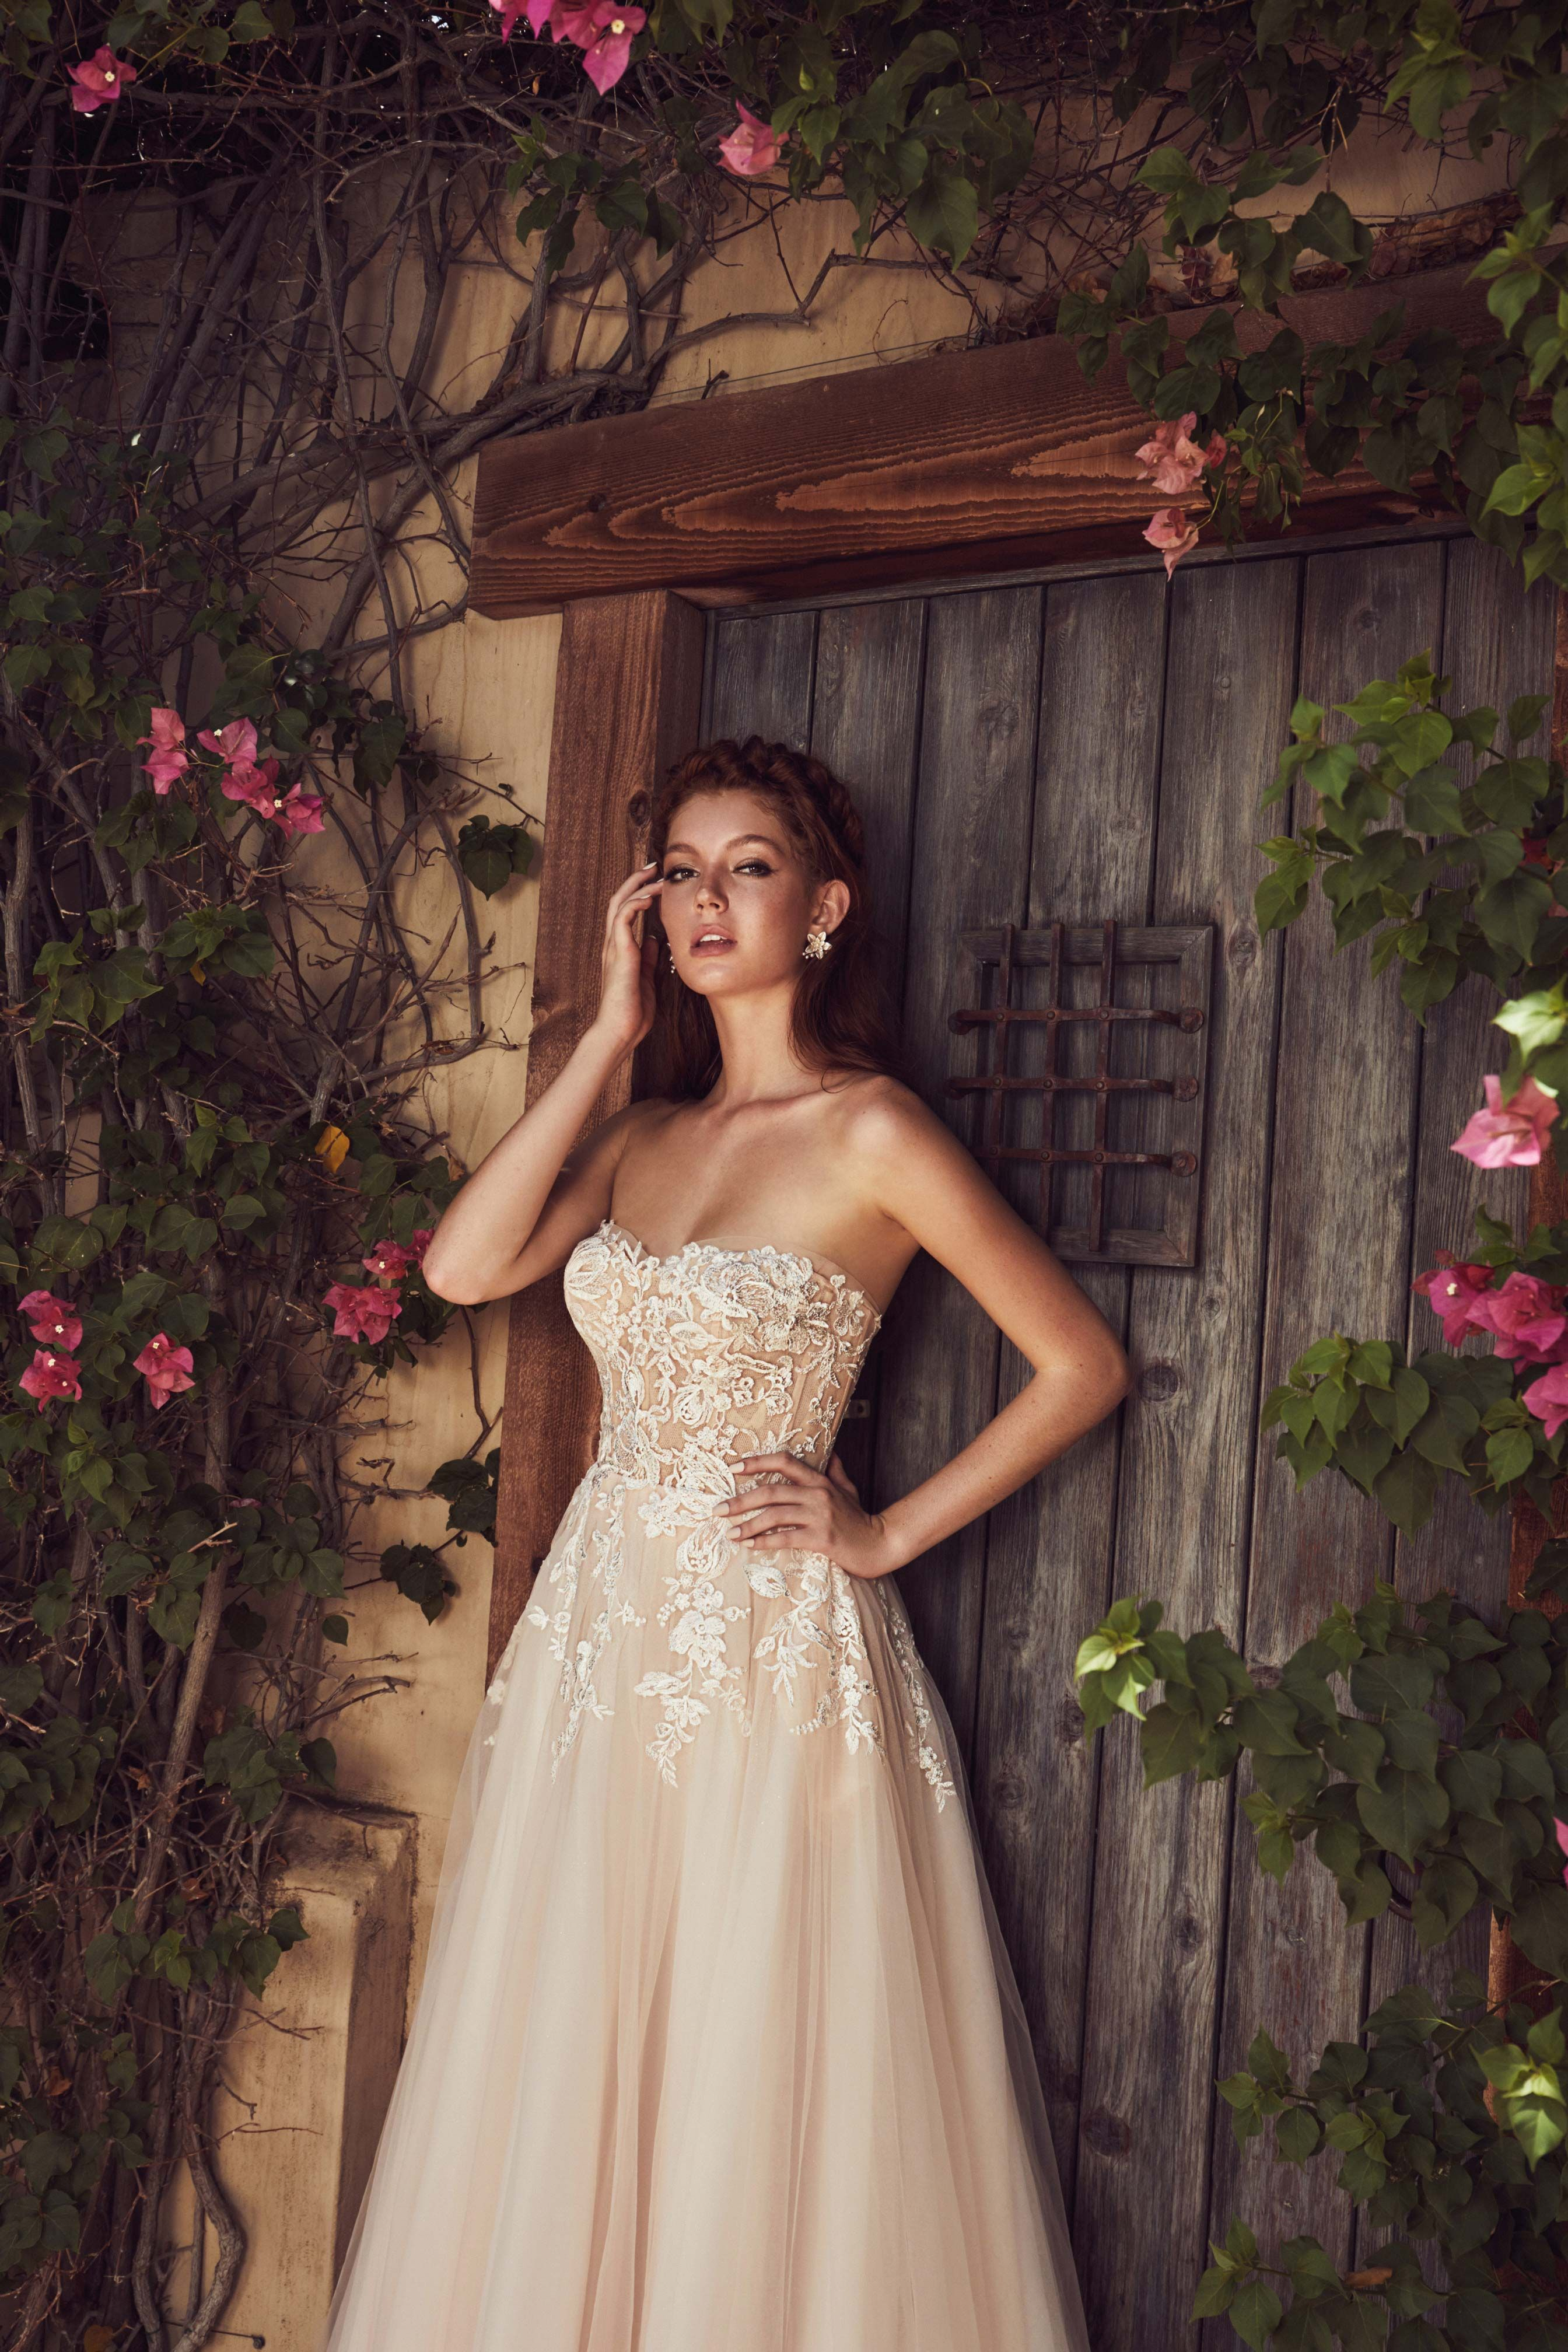 A Line Gown In Blush Strapless With A Shimmer Sparkle Skirt